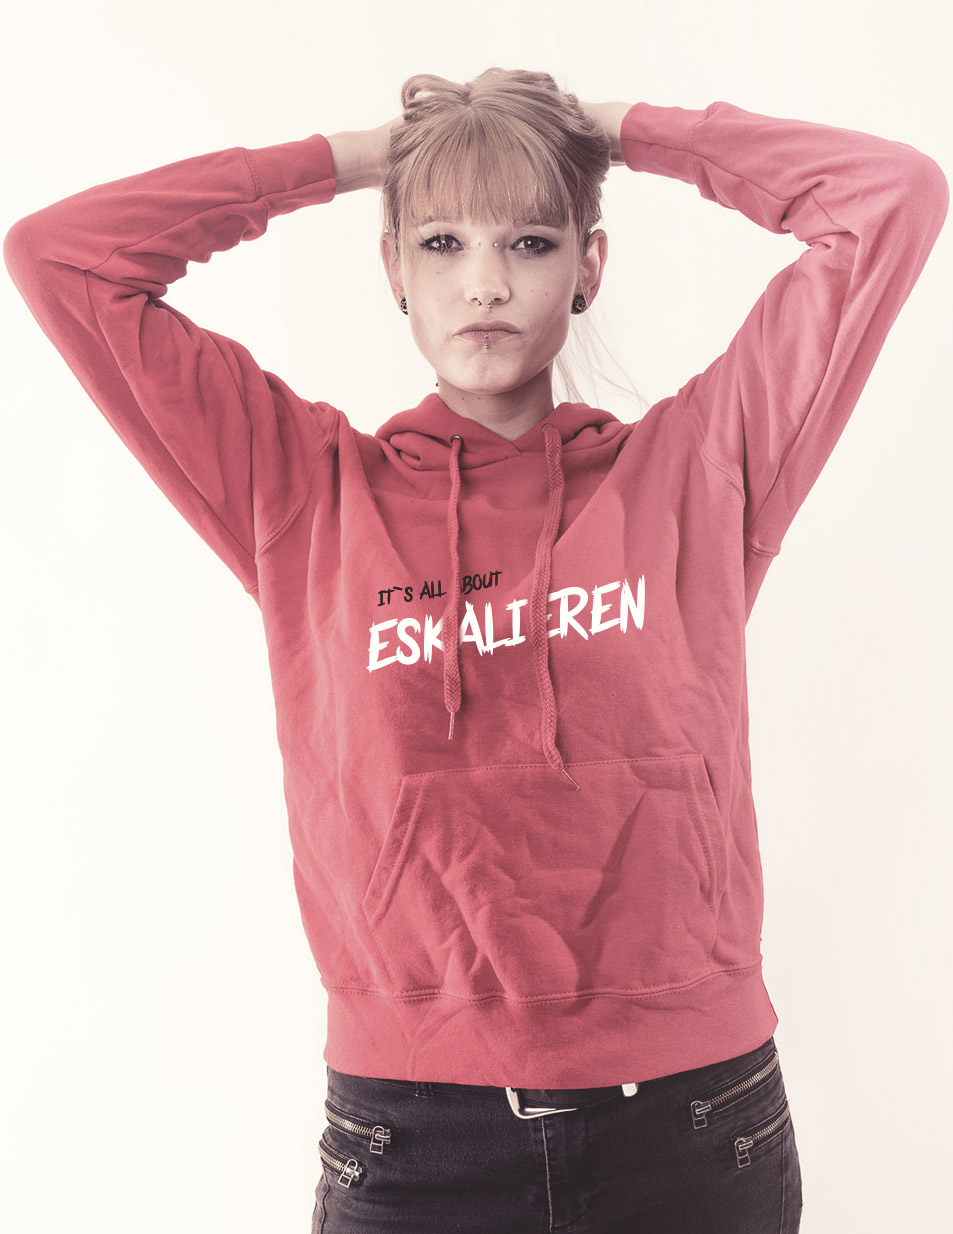 Its all about Eskalieren - Girly Kappu mehrfarbig auf pink